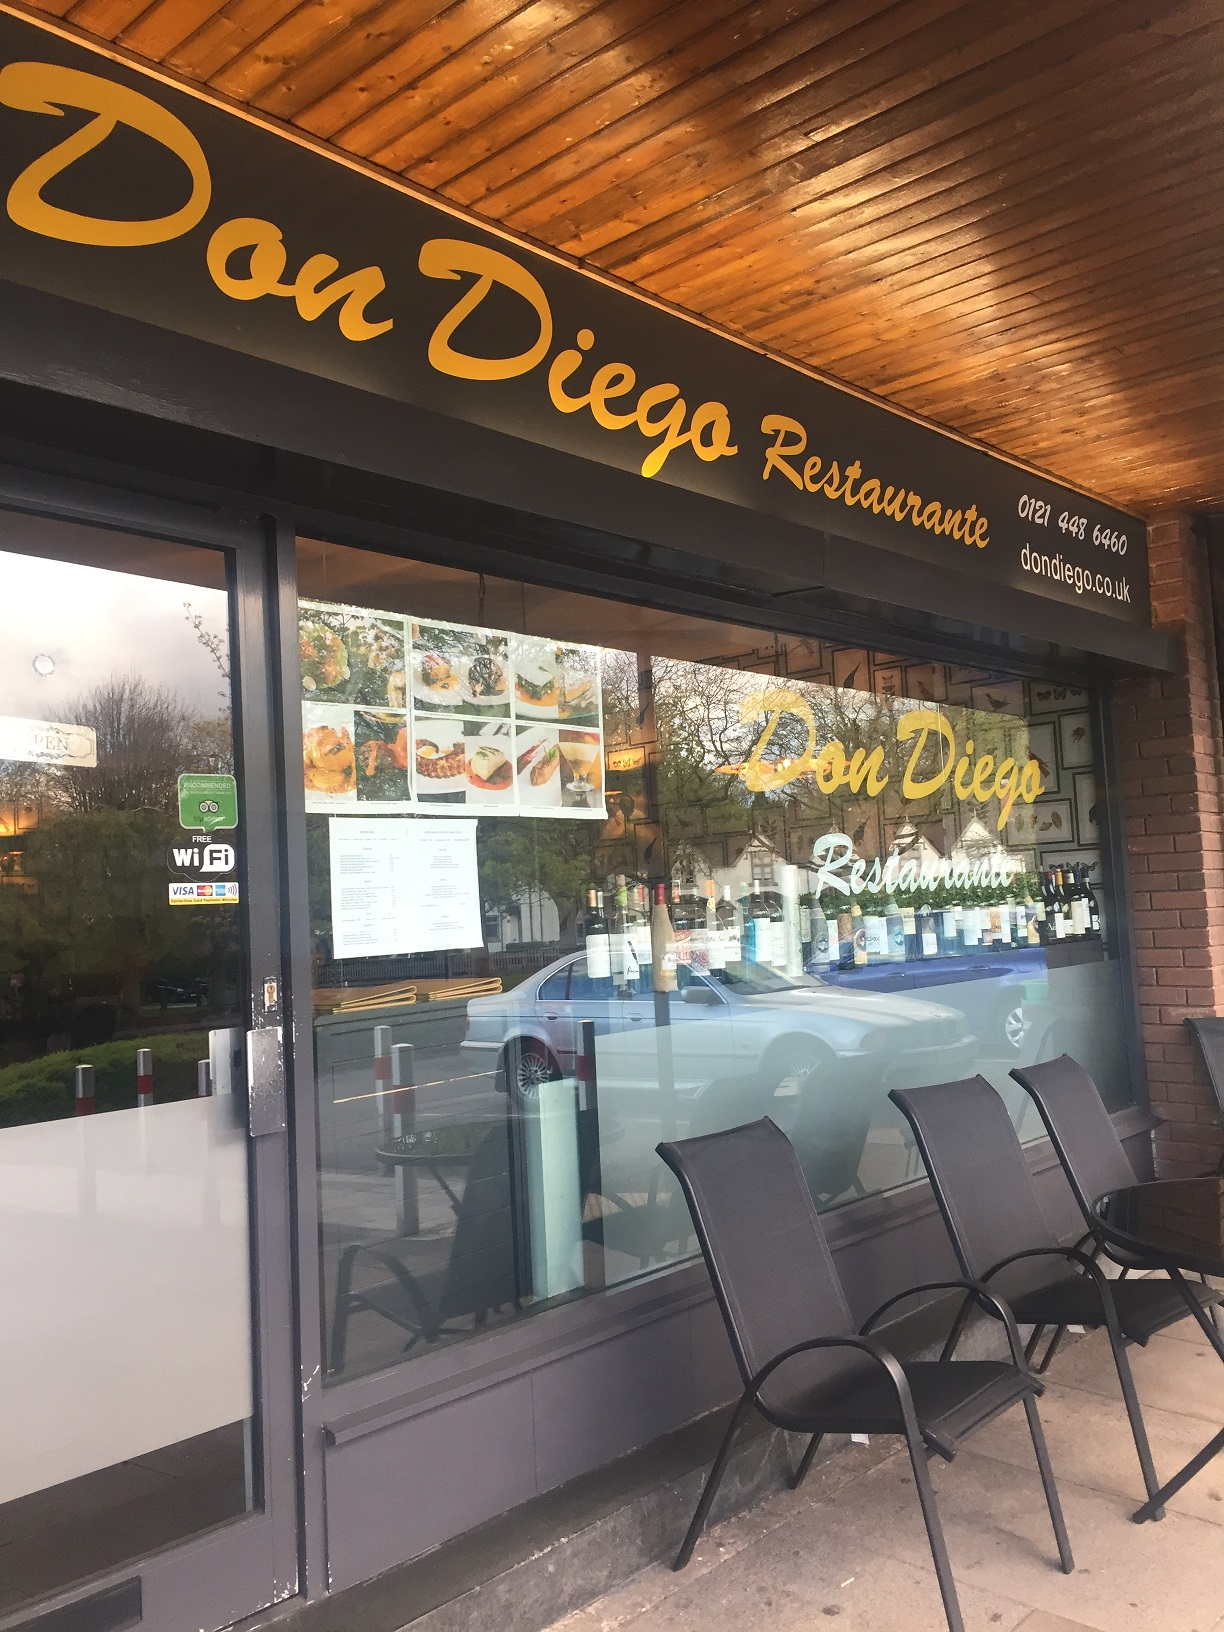 Dinning Like A Don! We Review Don Diego Restaurant in Birmingham.